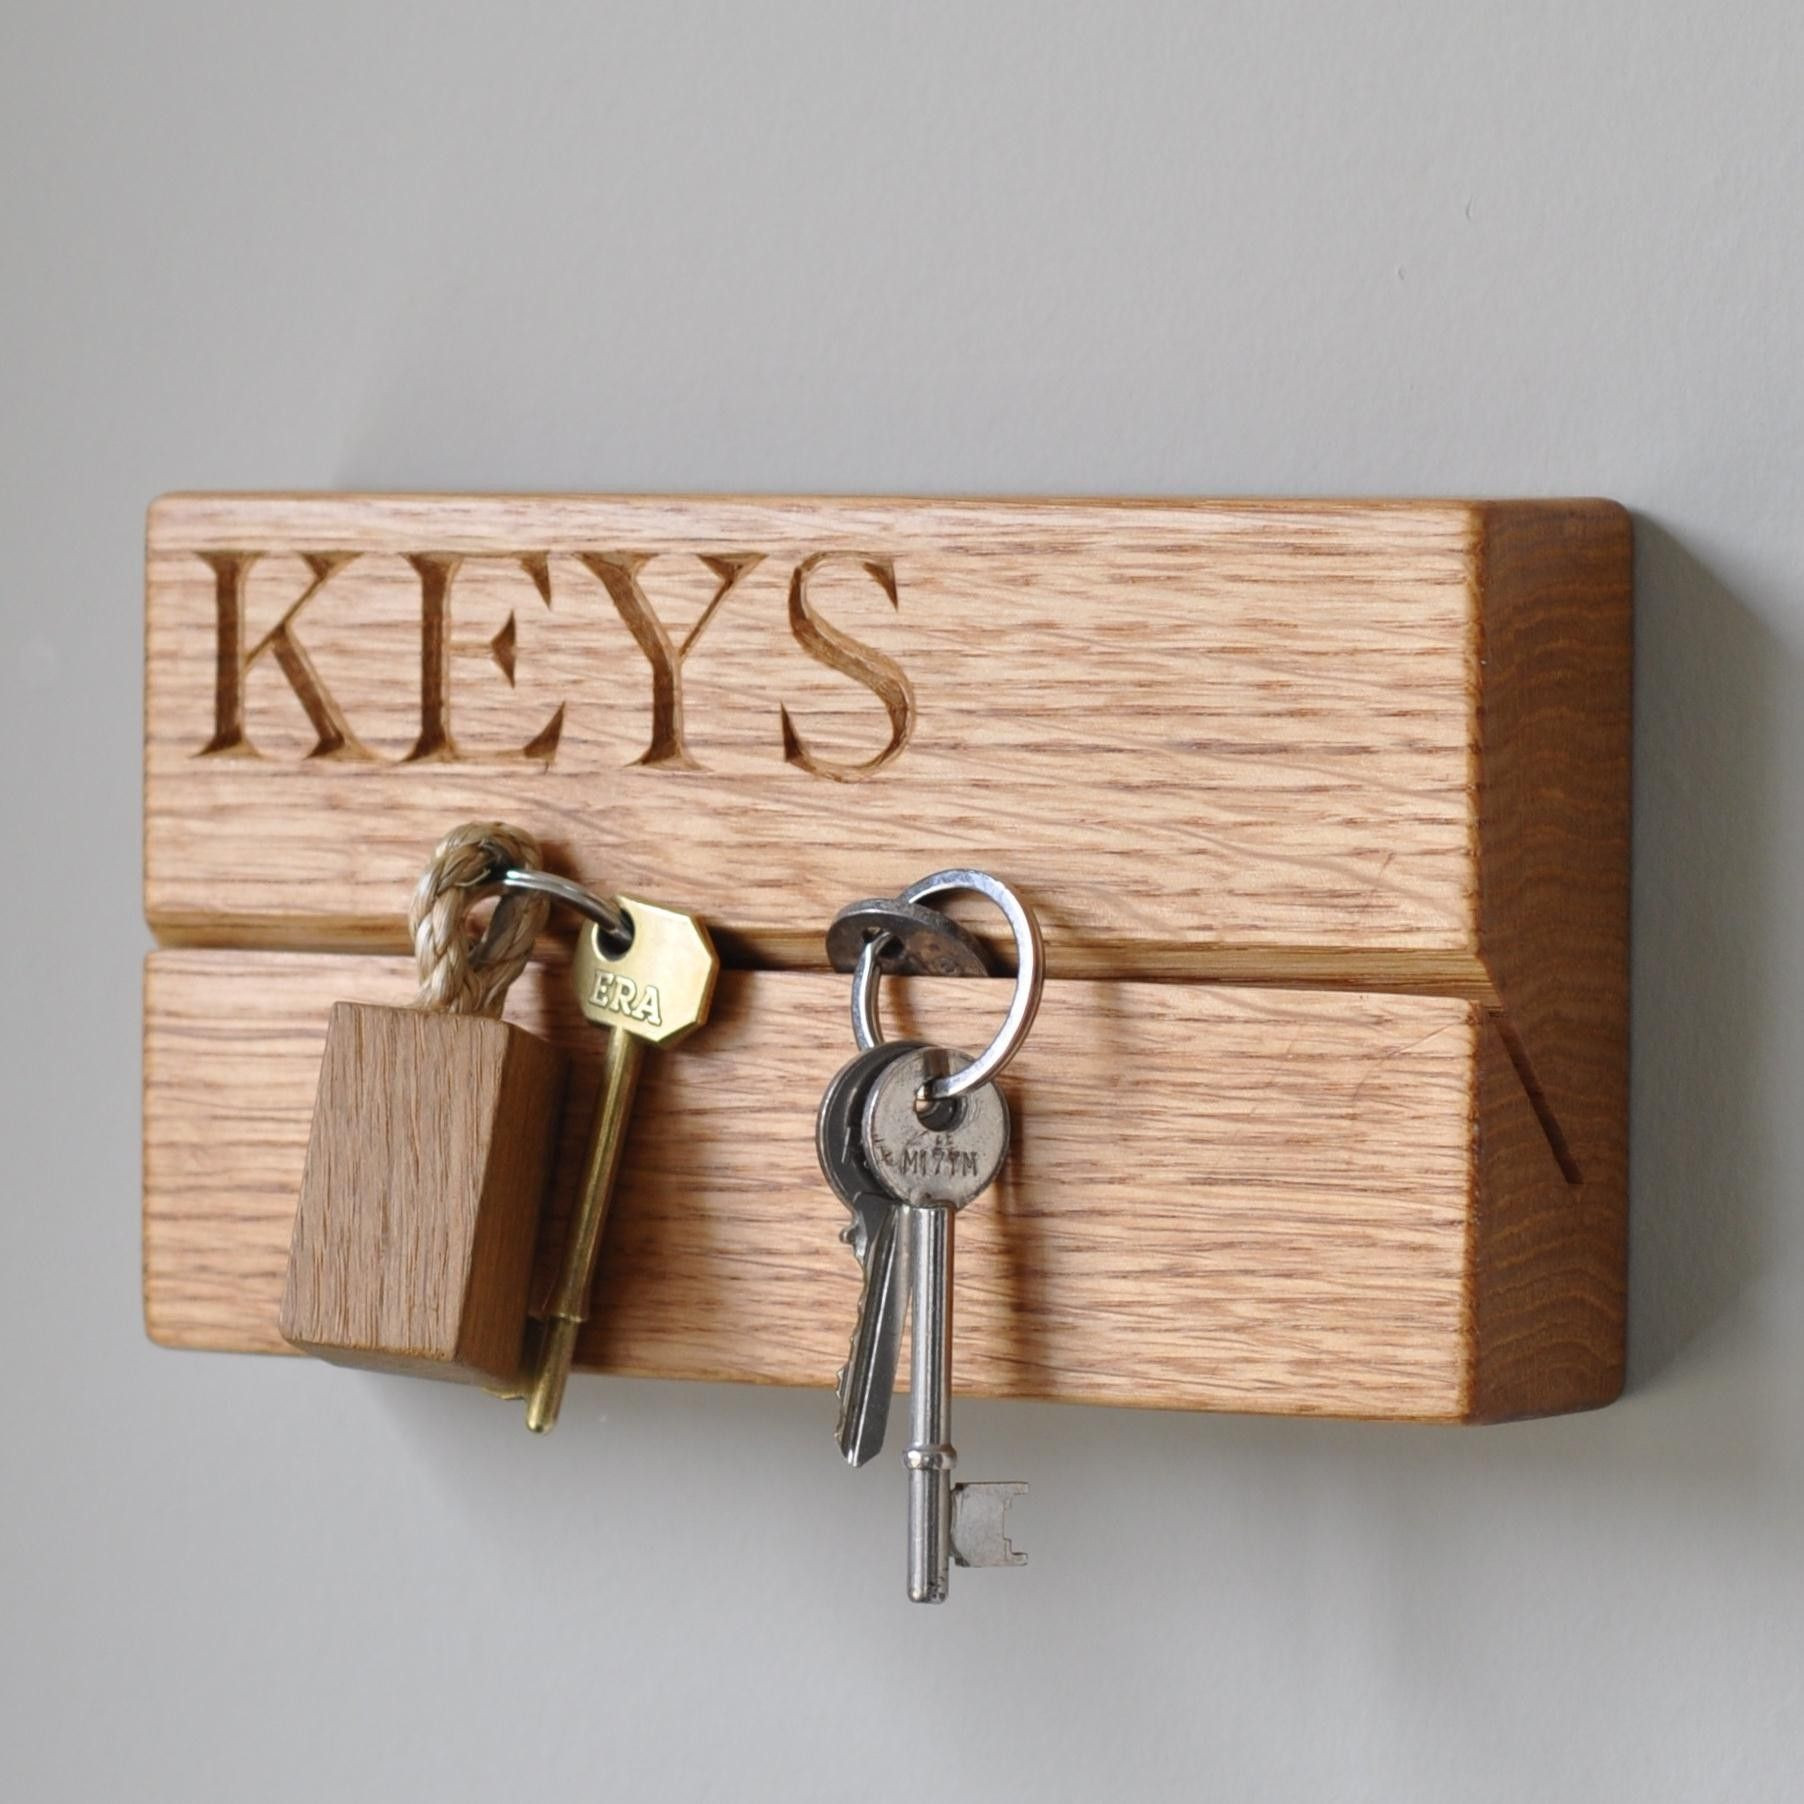 Best ideas about DIY Key Organizer . Save or Pin Wooden Key Holder The Handpicked Collection Now.